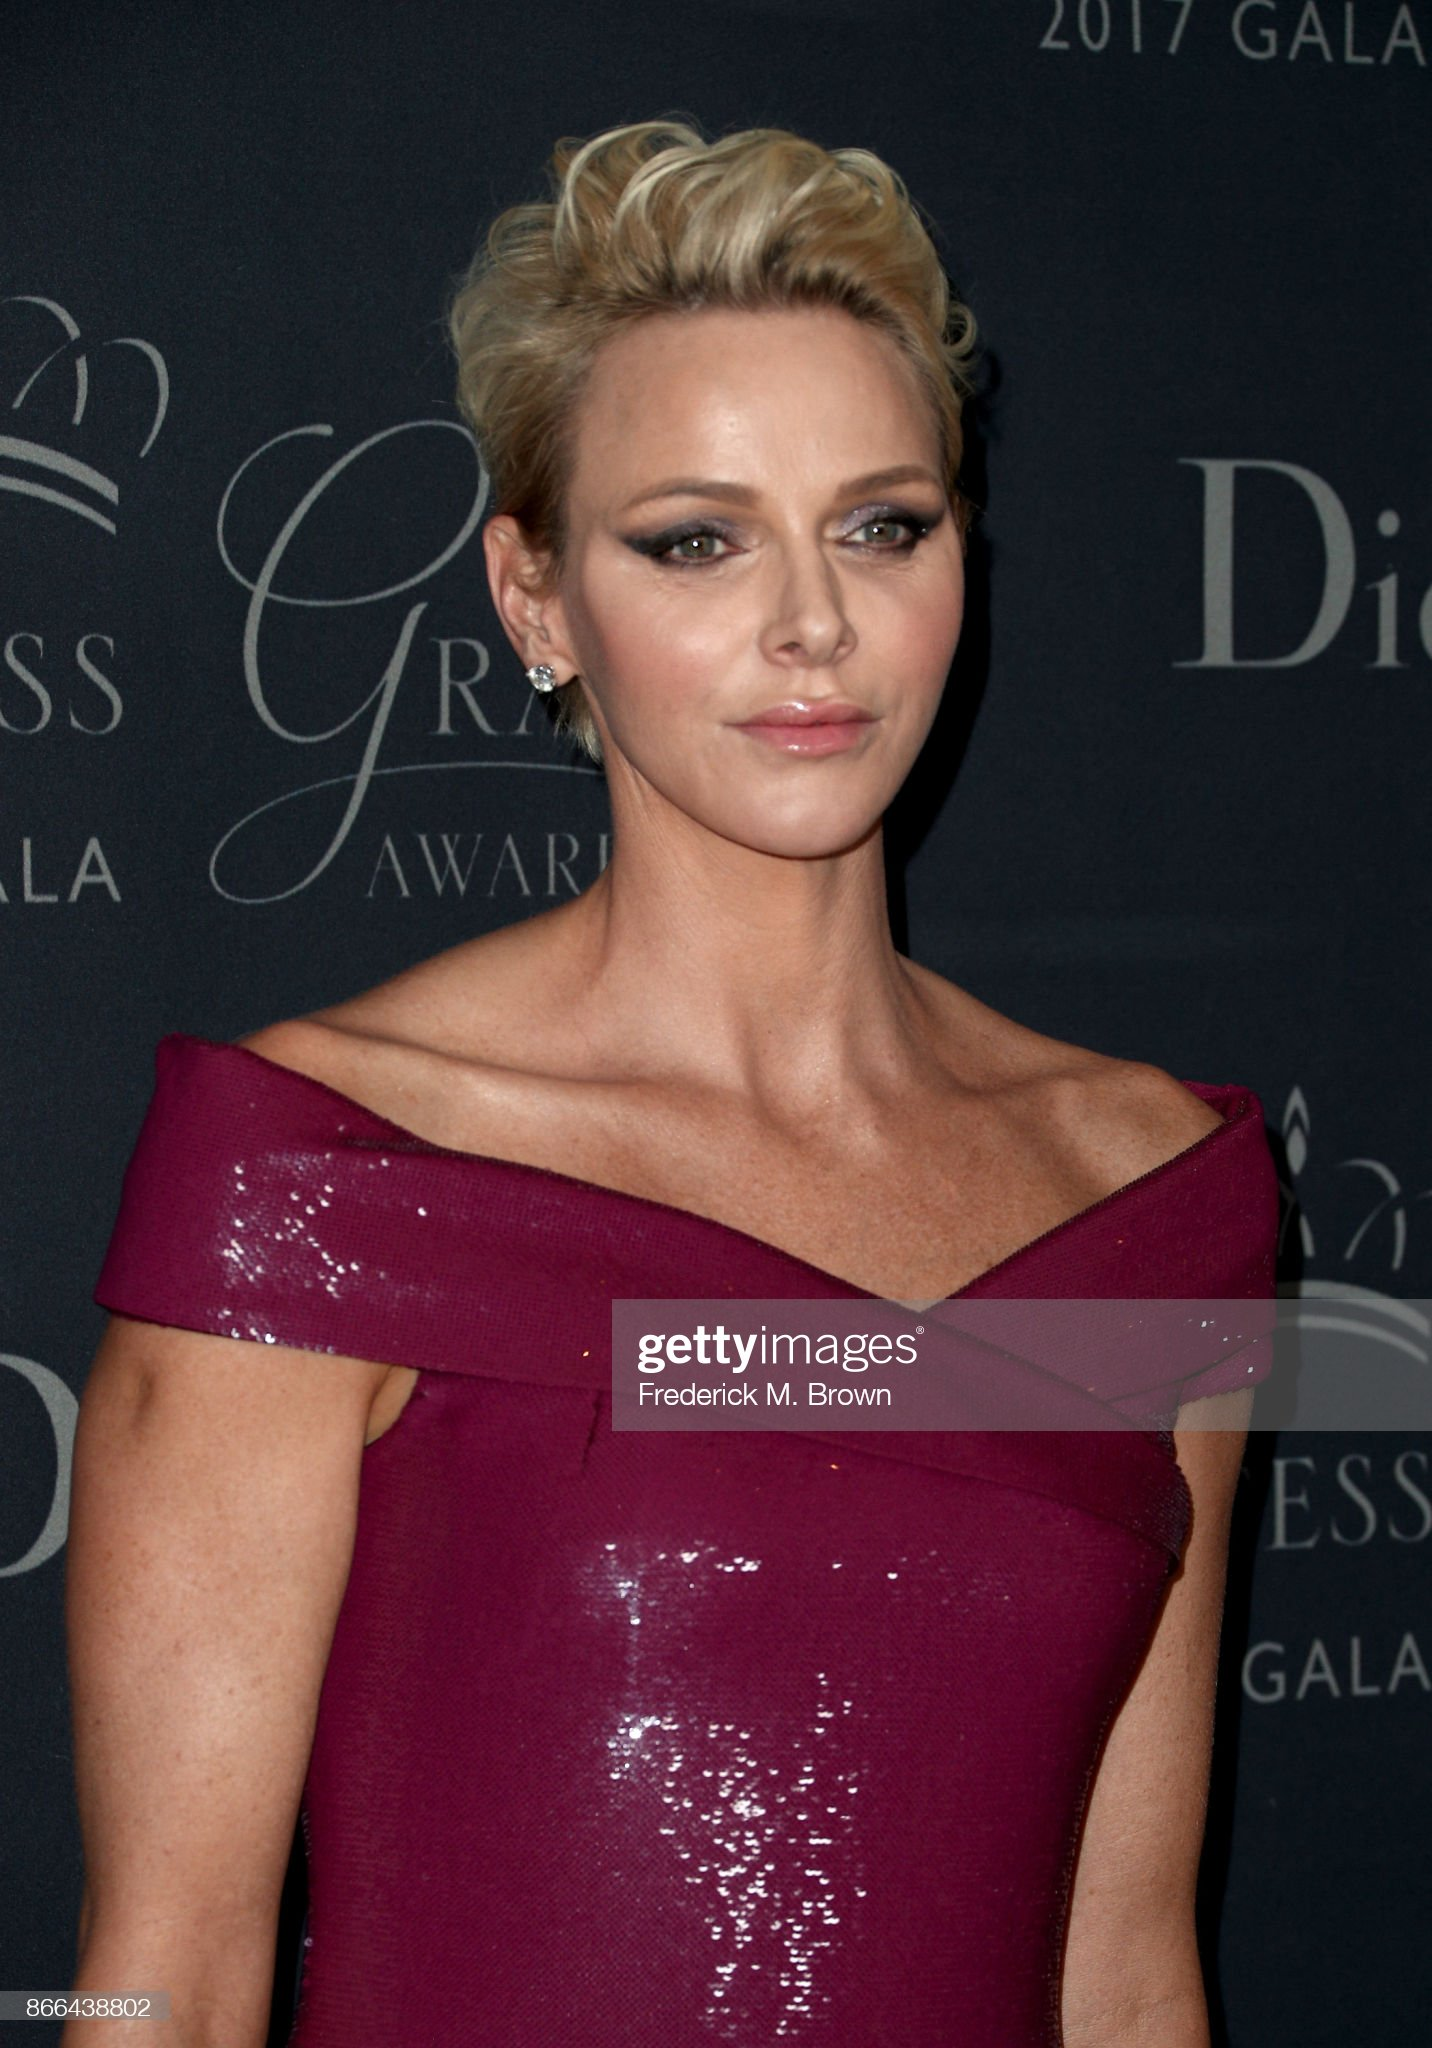 2017 Princess Grace Awards Gala - Arrivals : News Photo